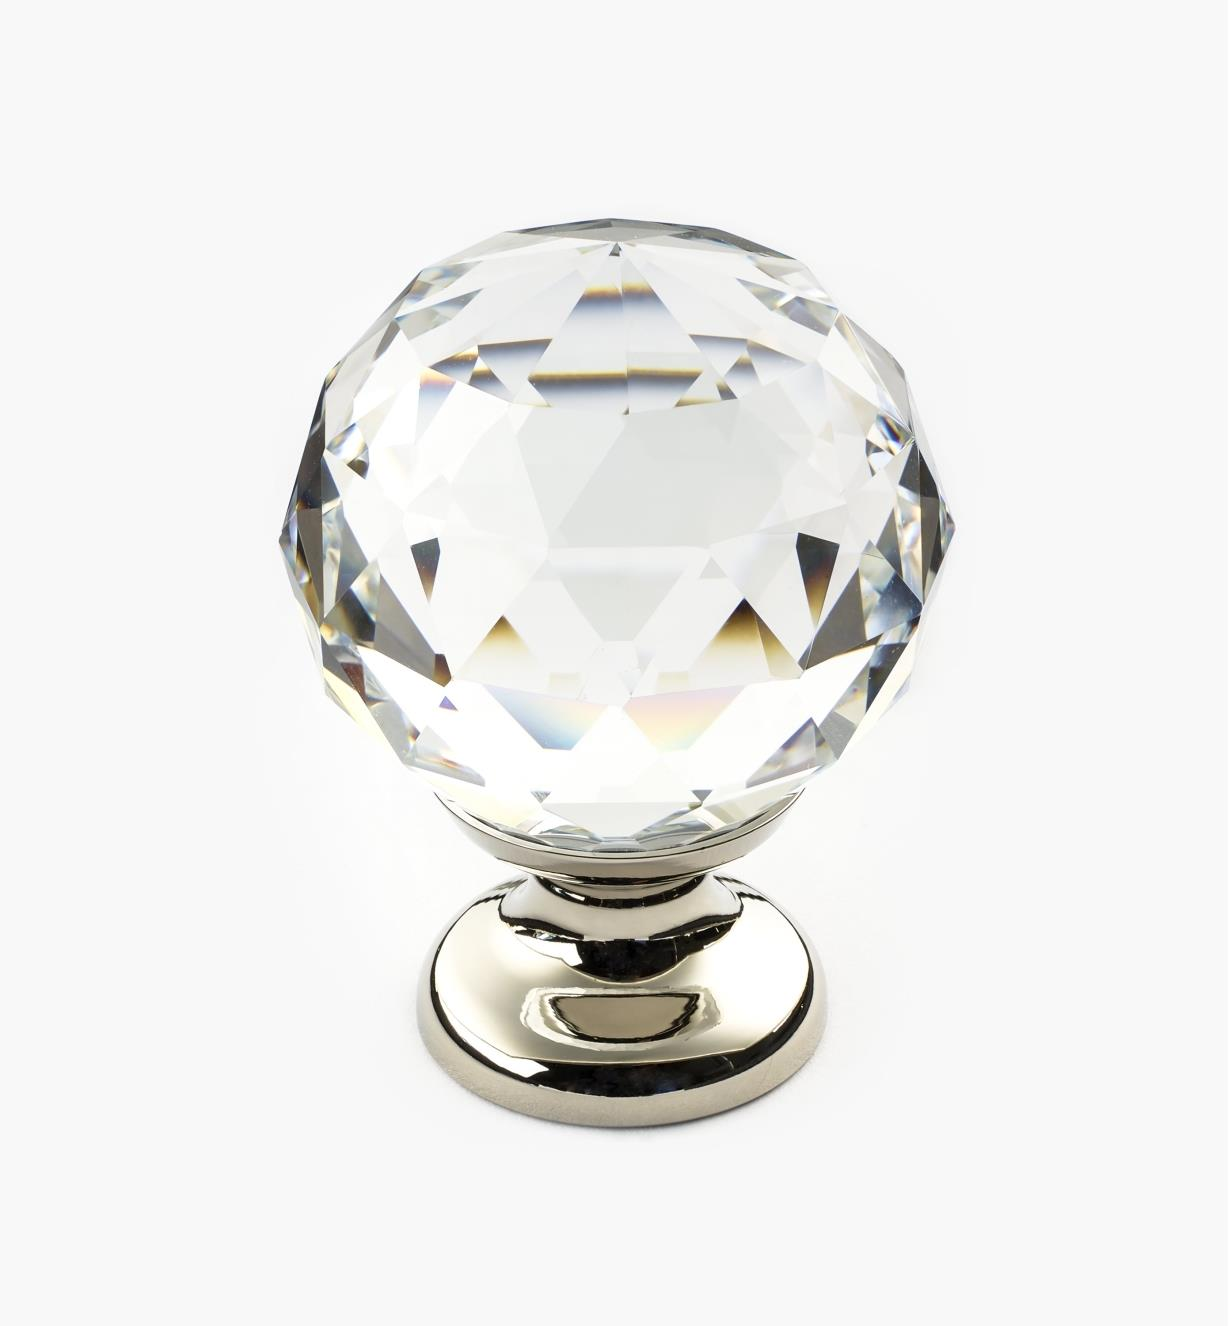 01A3441 - Large Faceted Glass Knob, PN